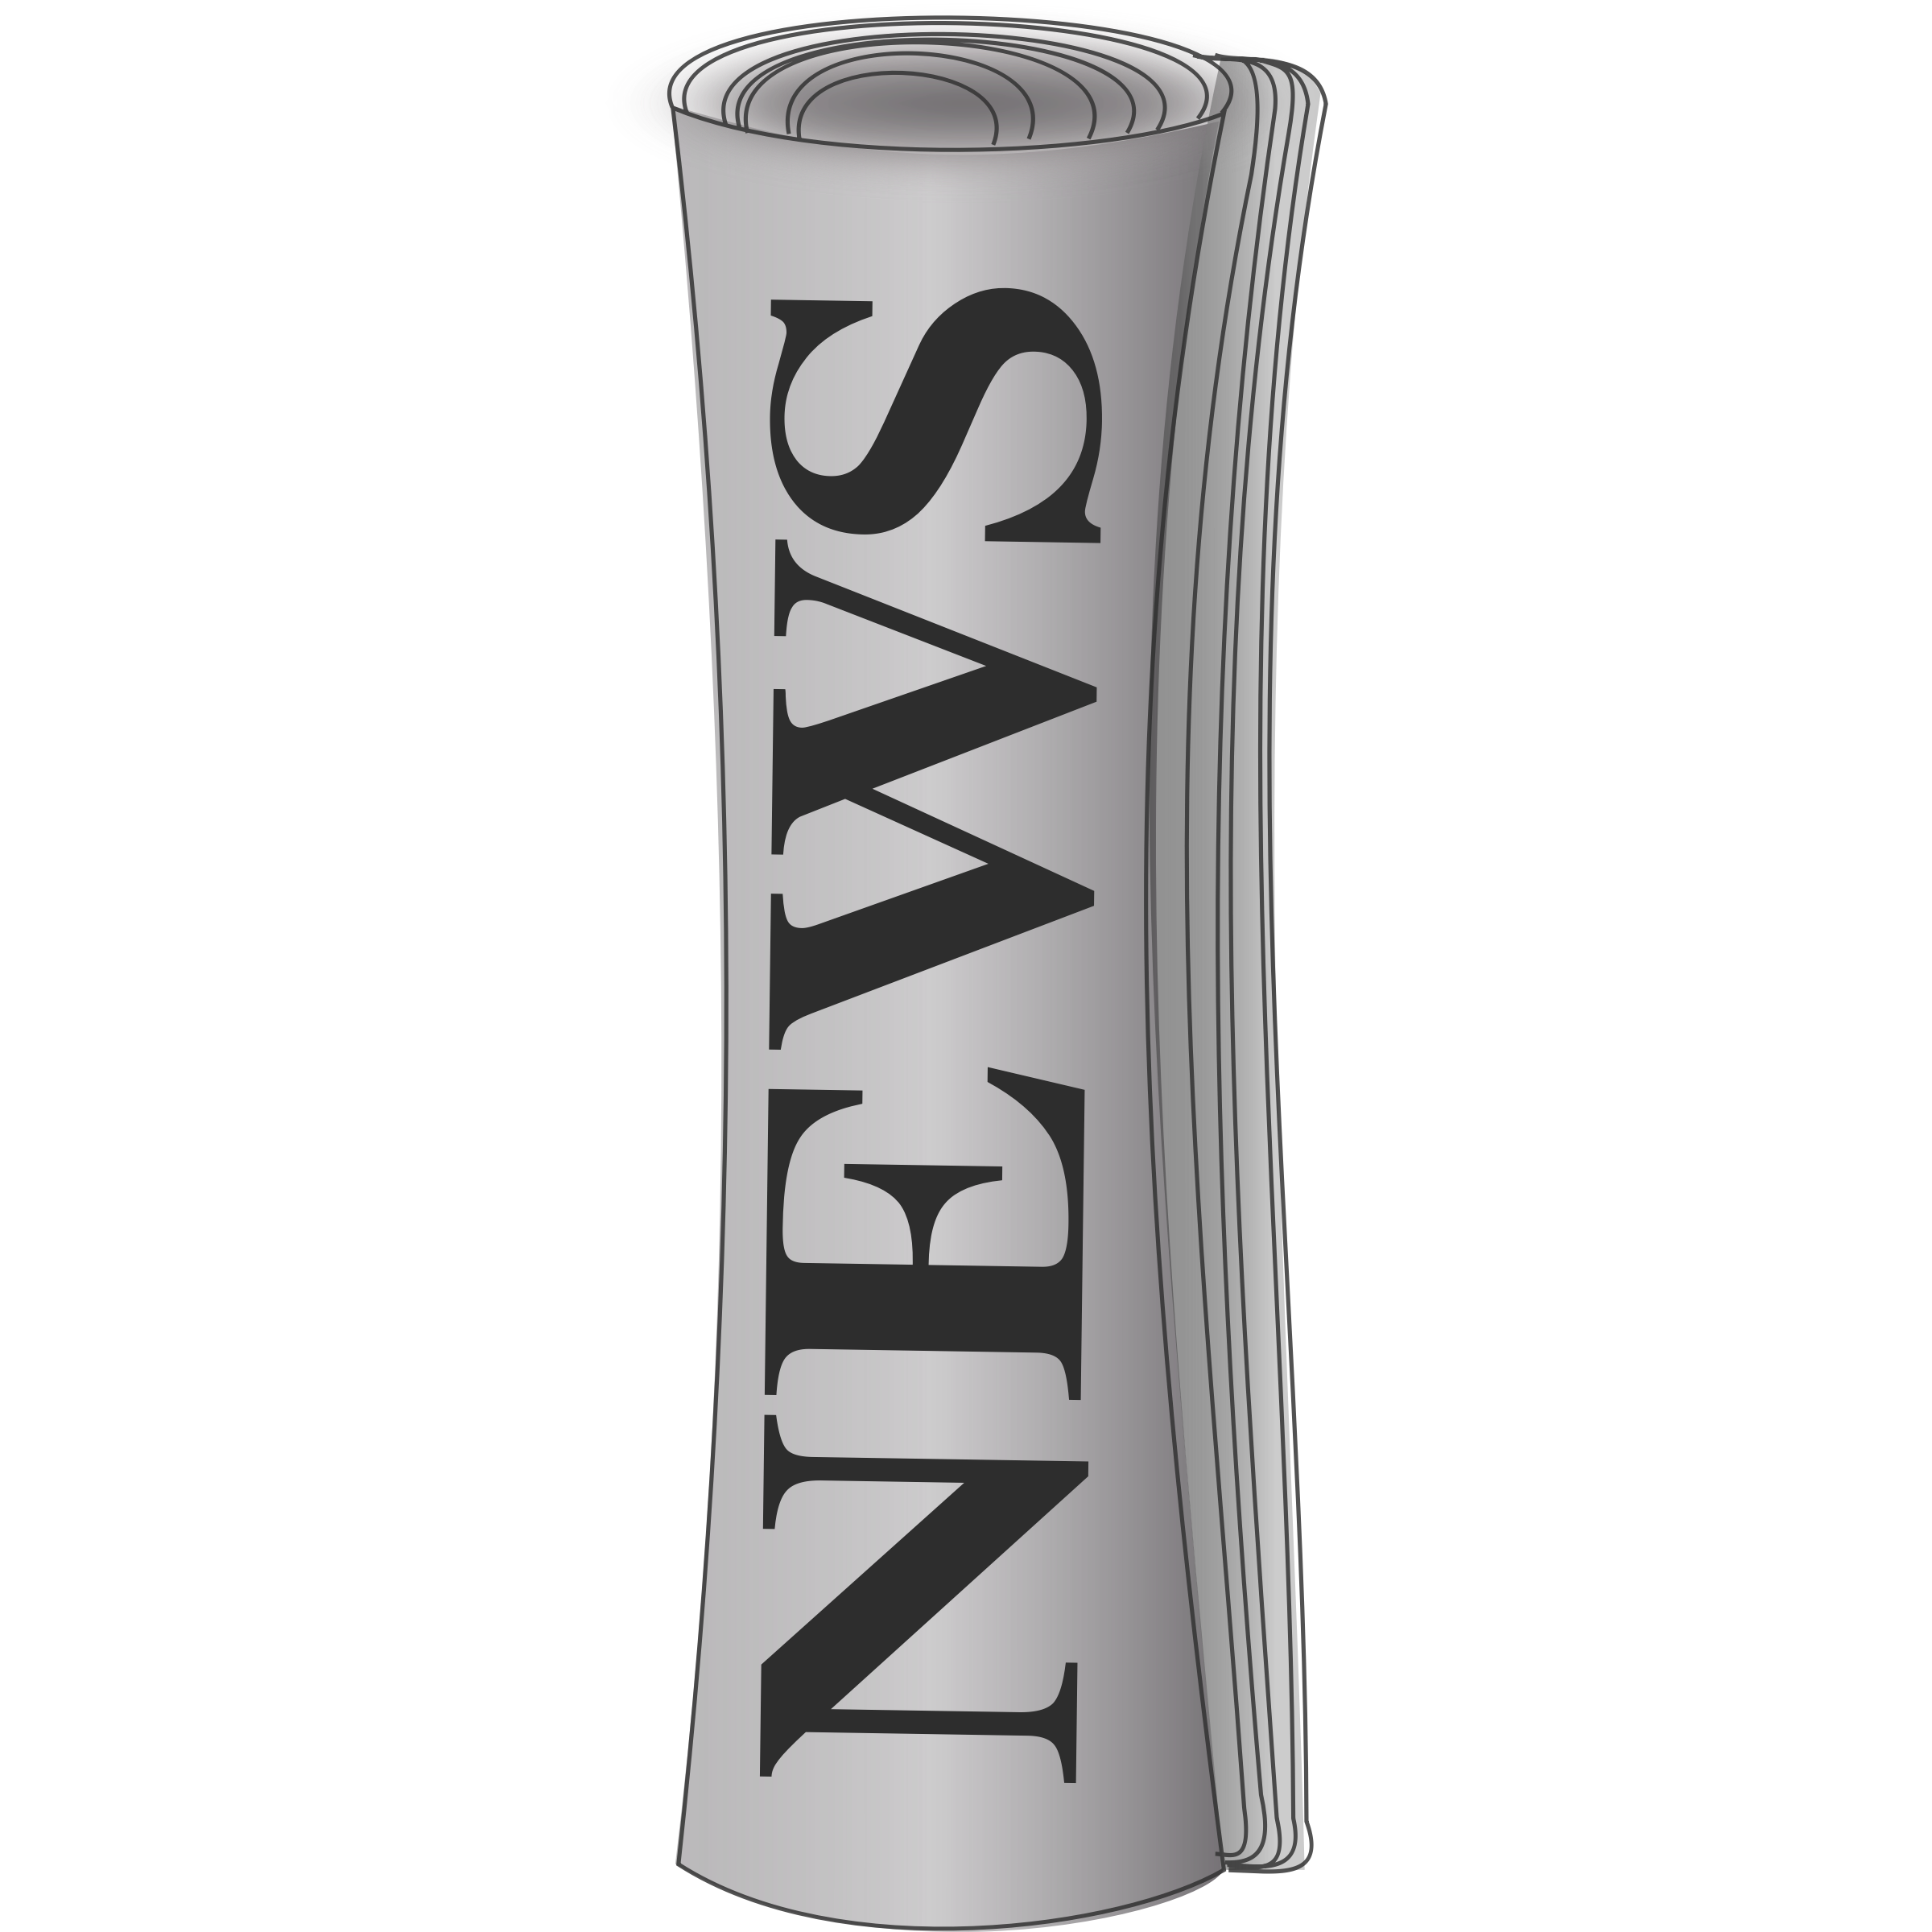 Free Rolled Newspaper Cliparts, Download Free Clip Art, Free.